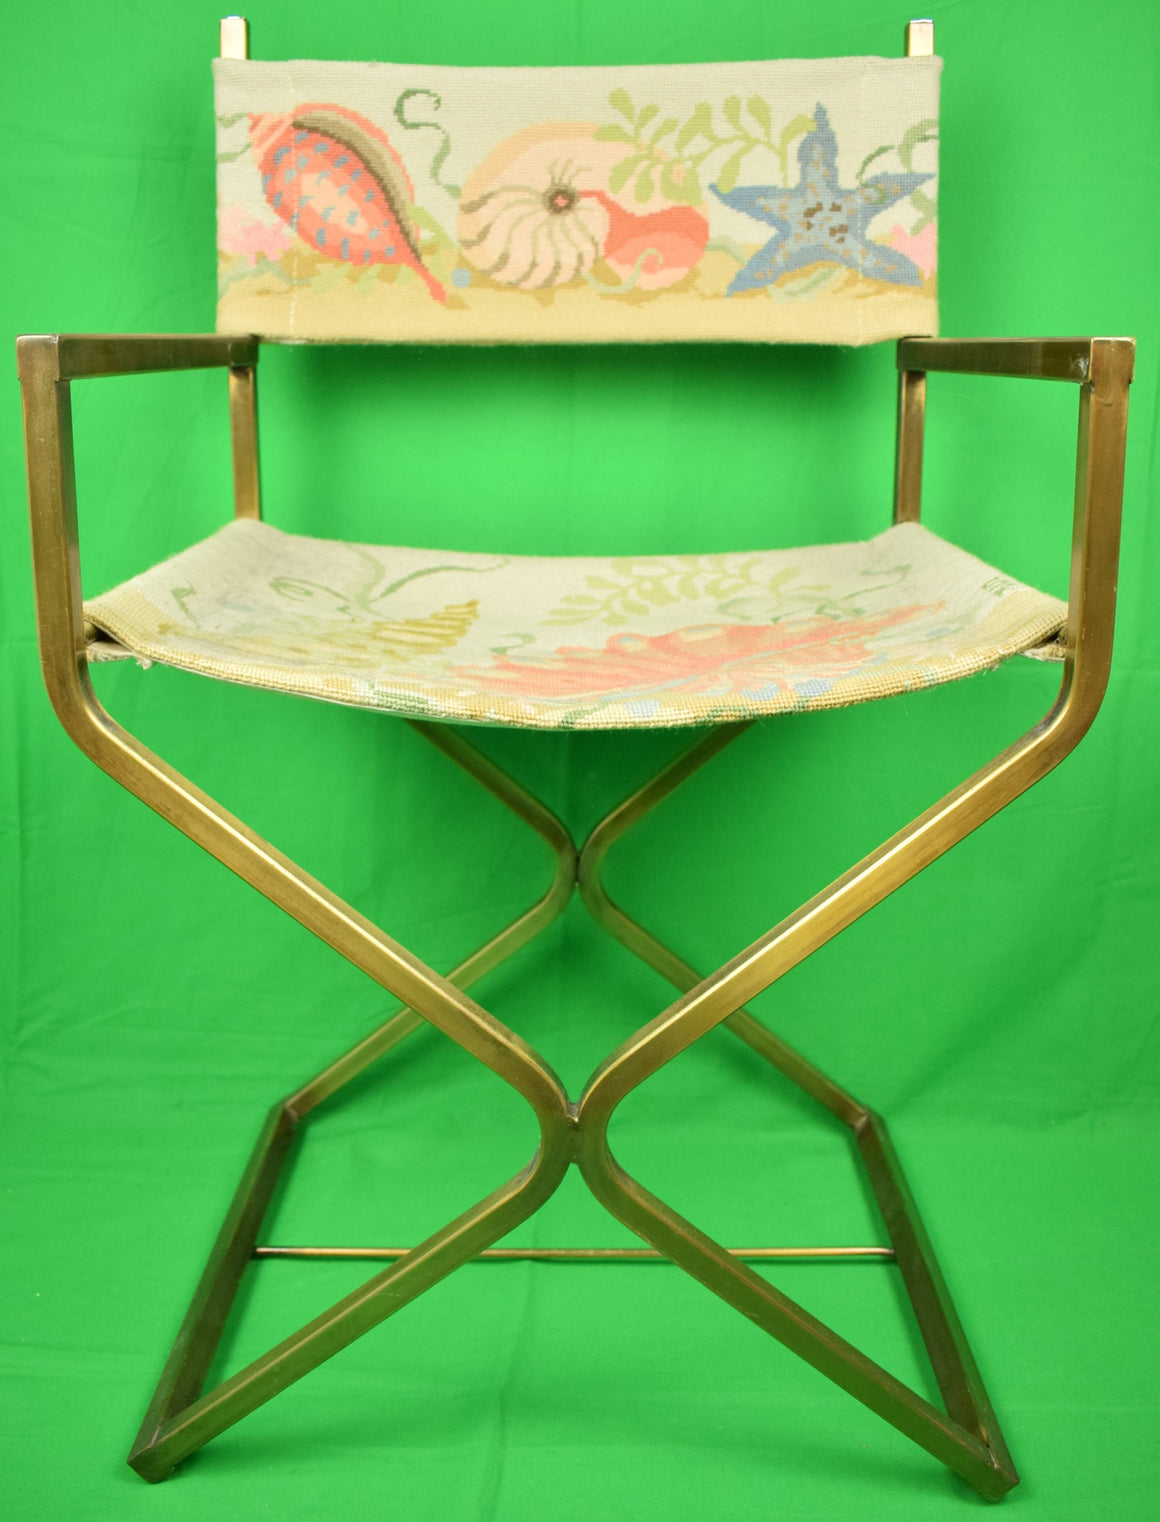 Palm Beach Seashells c1960s Hand-Needlepoint Director's Chair